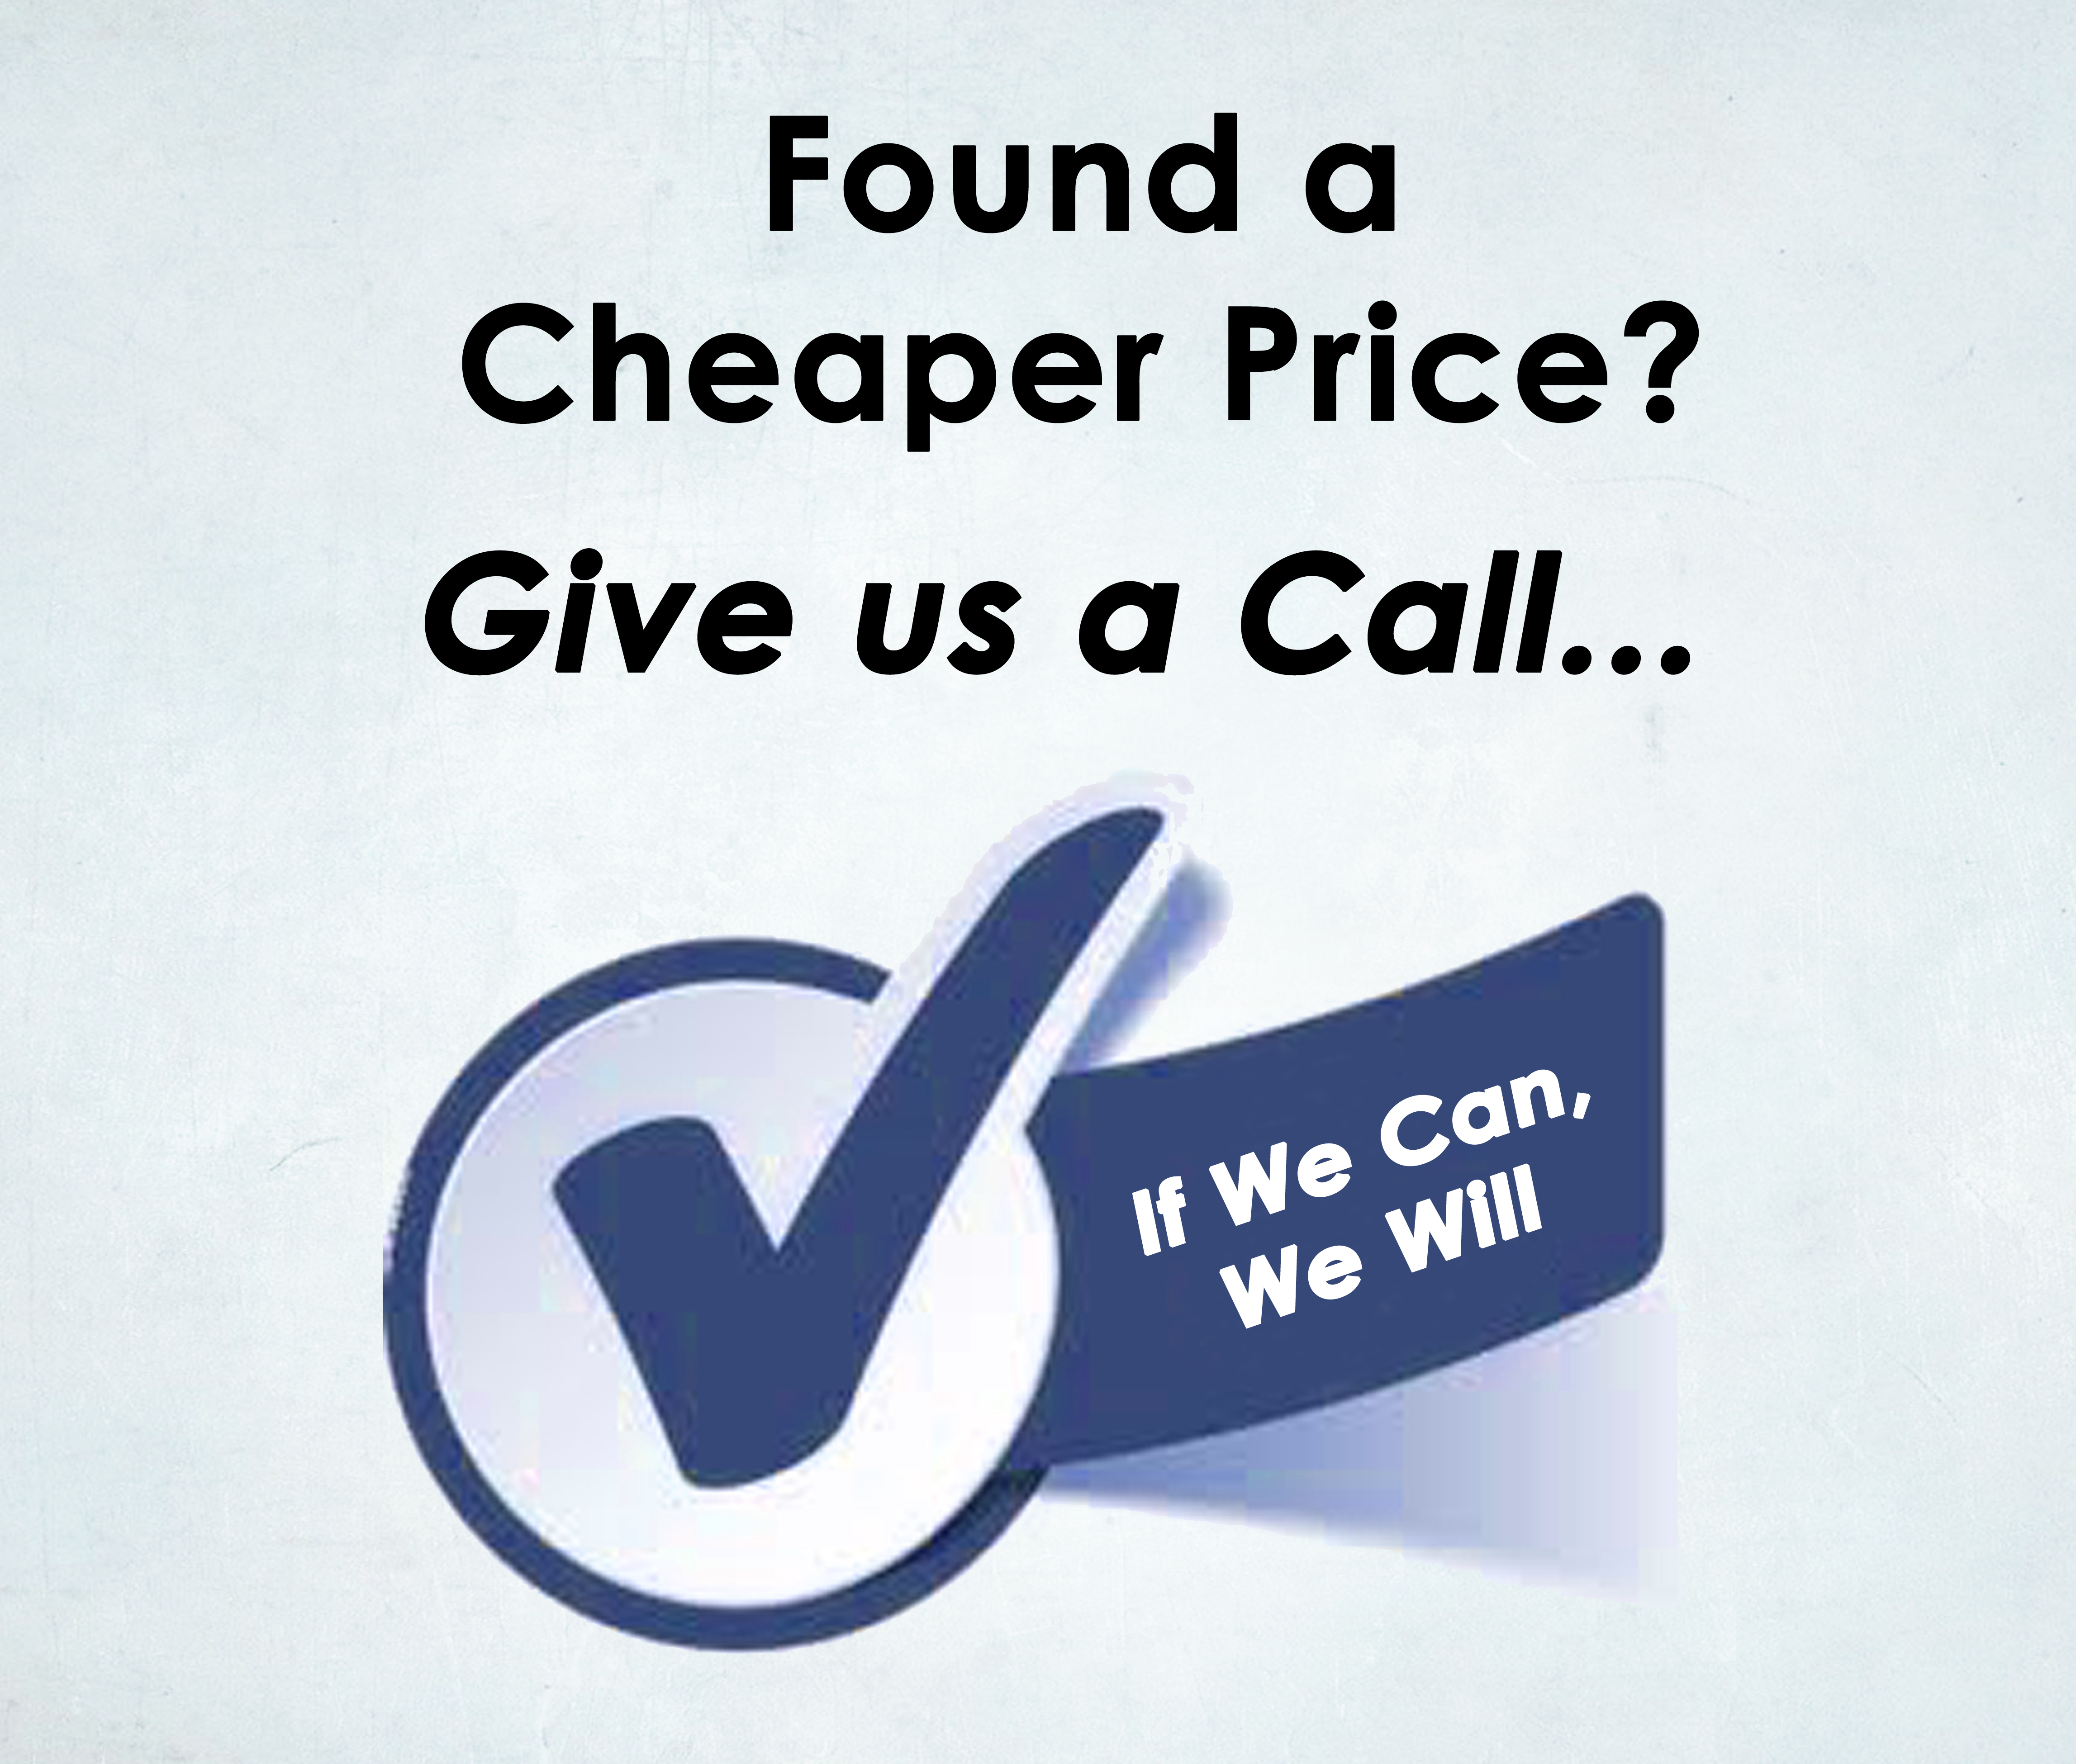 Found a cheaper price? Give us a call... If we can we will!